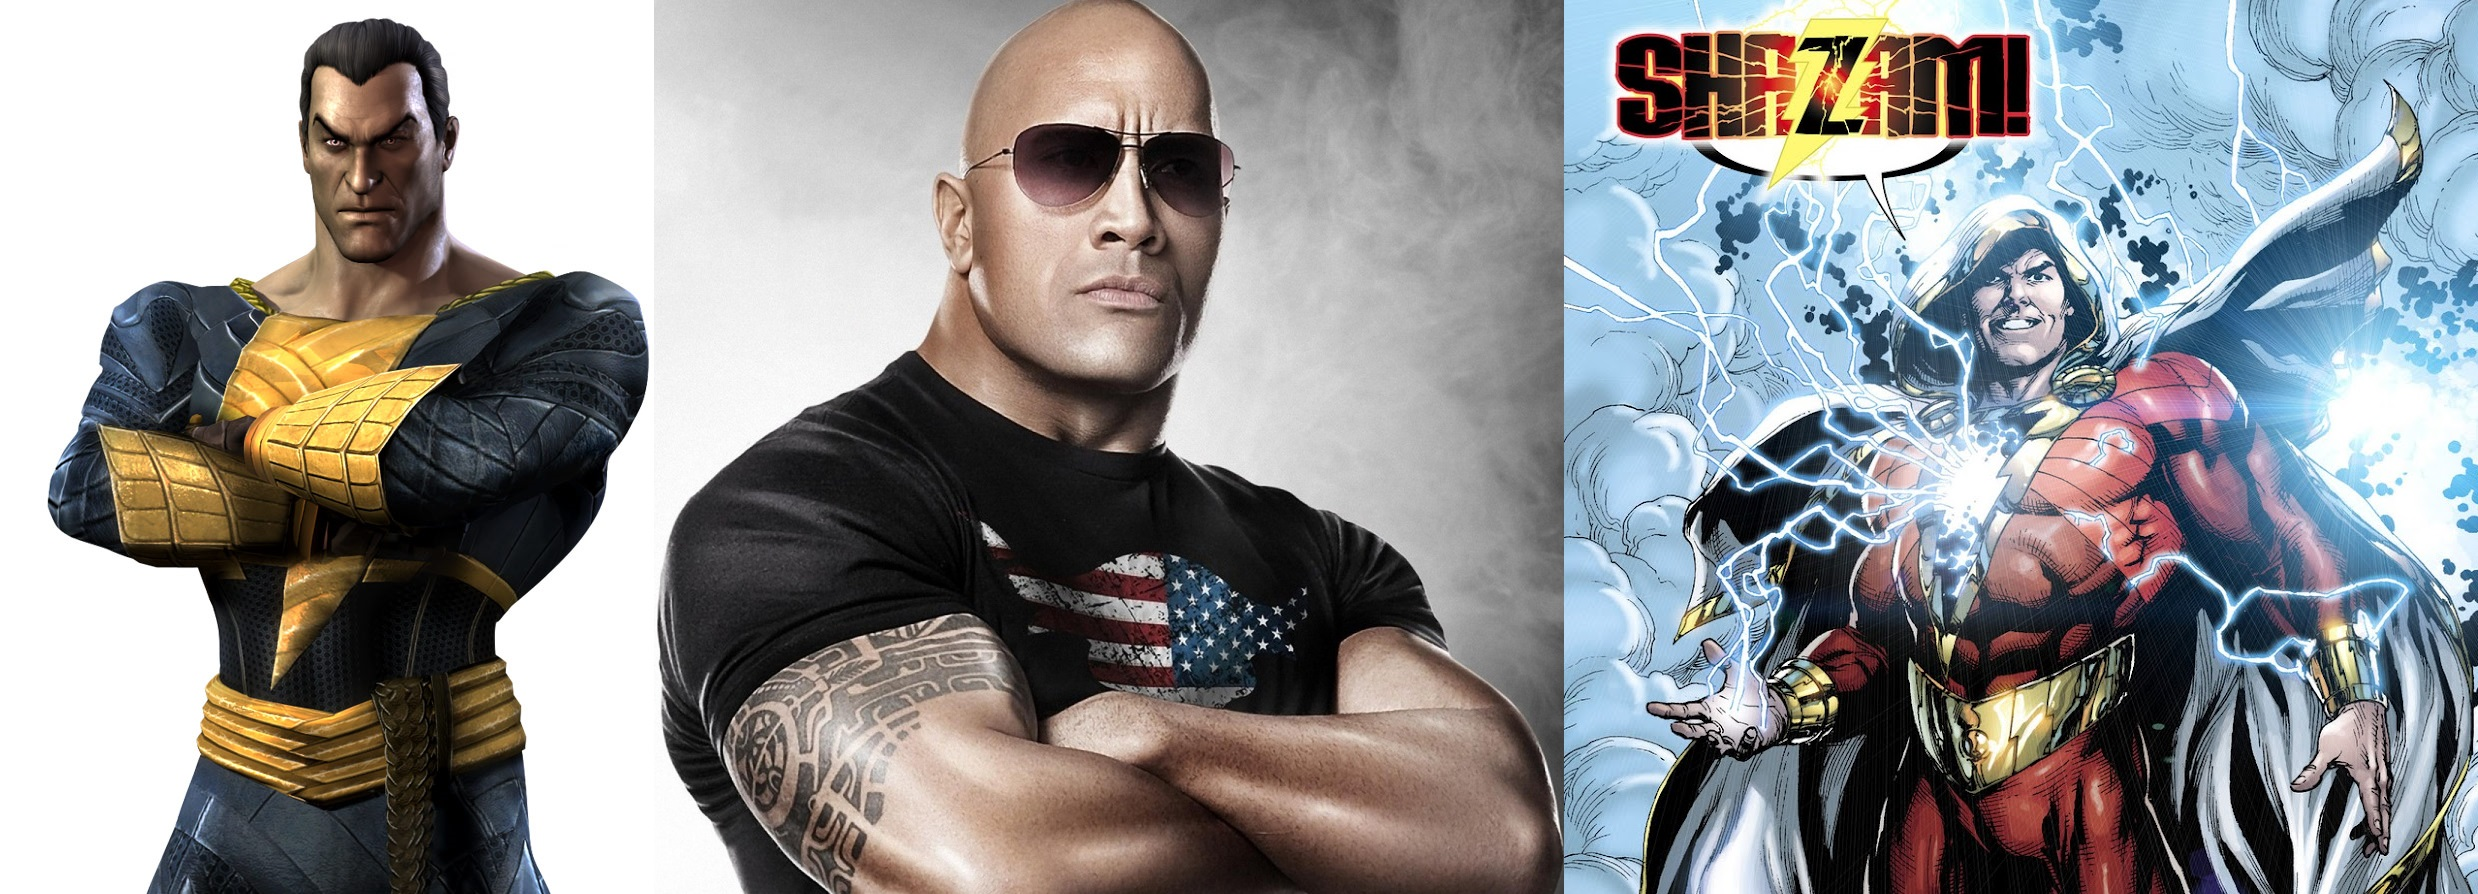 Dwayne 'The Rock' Johnson will play a Superman-type